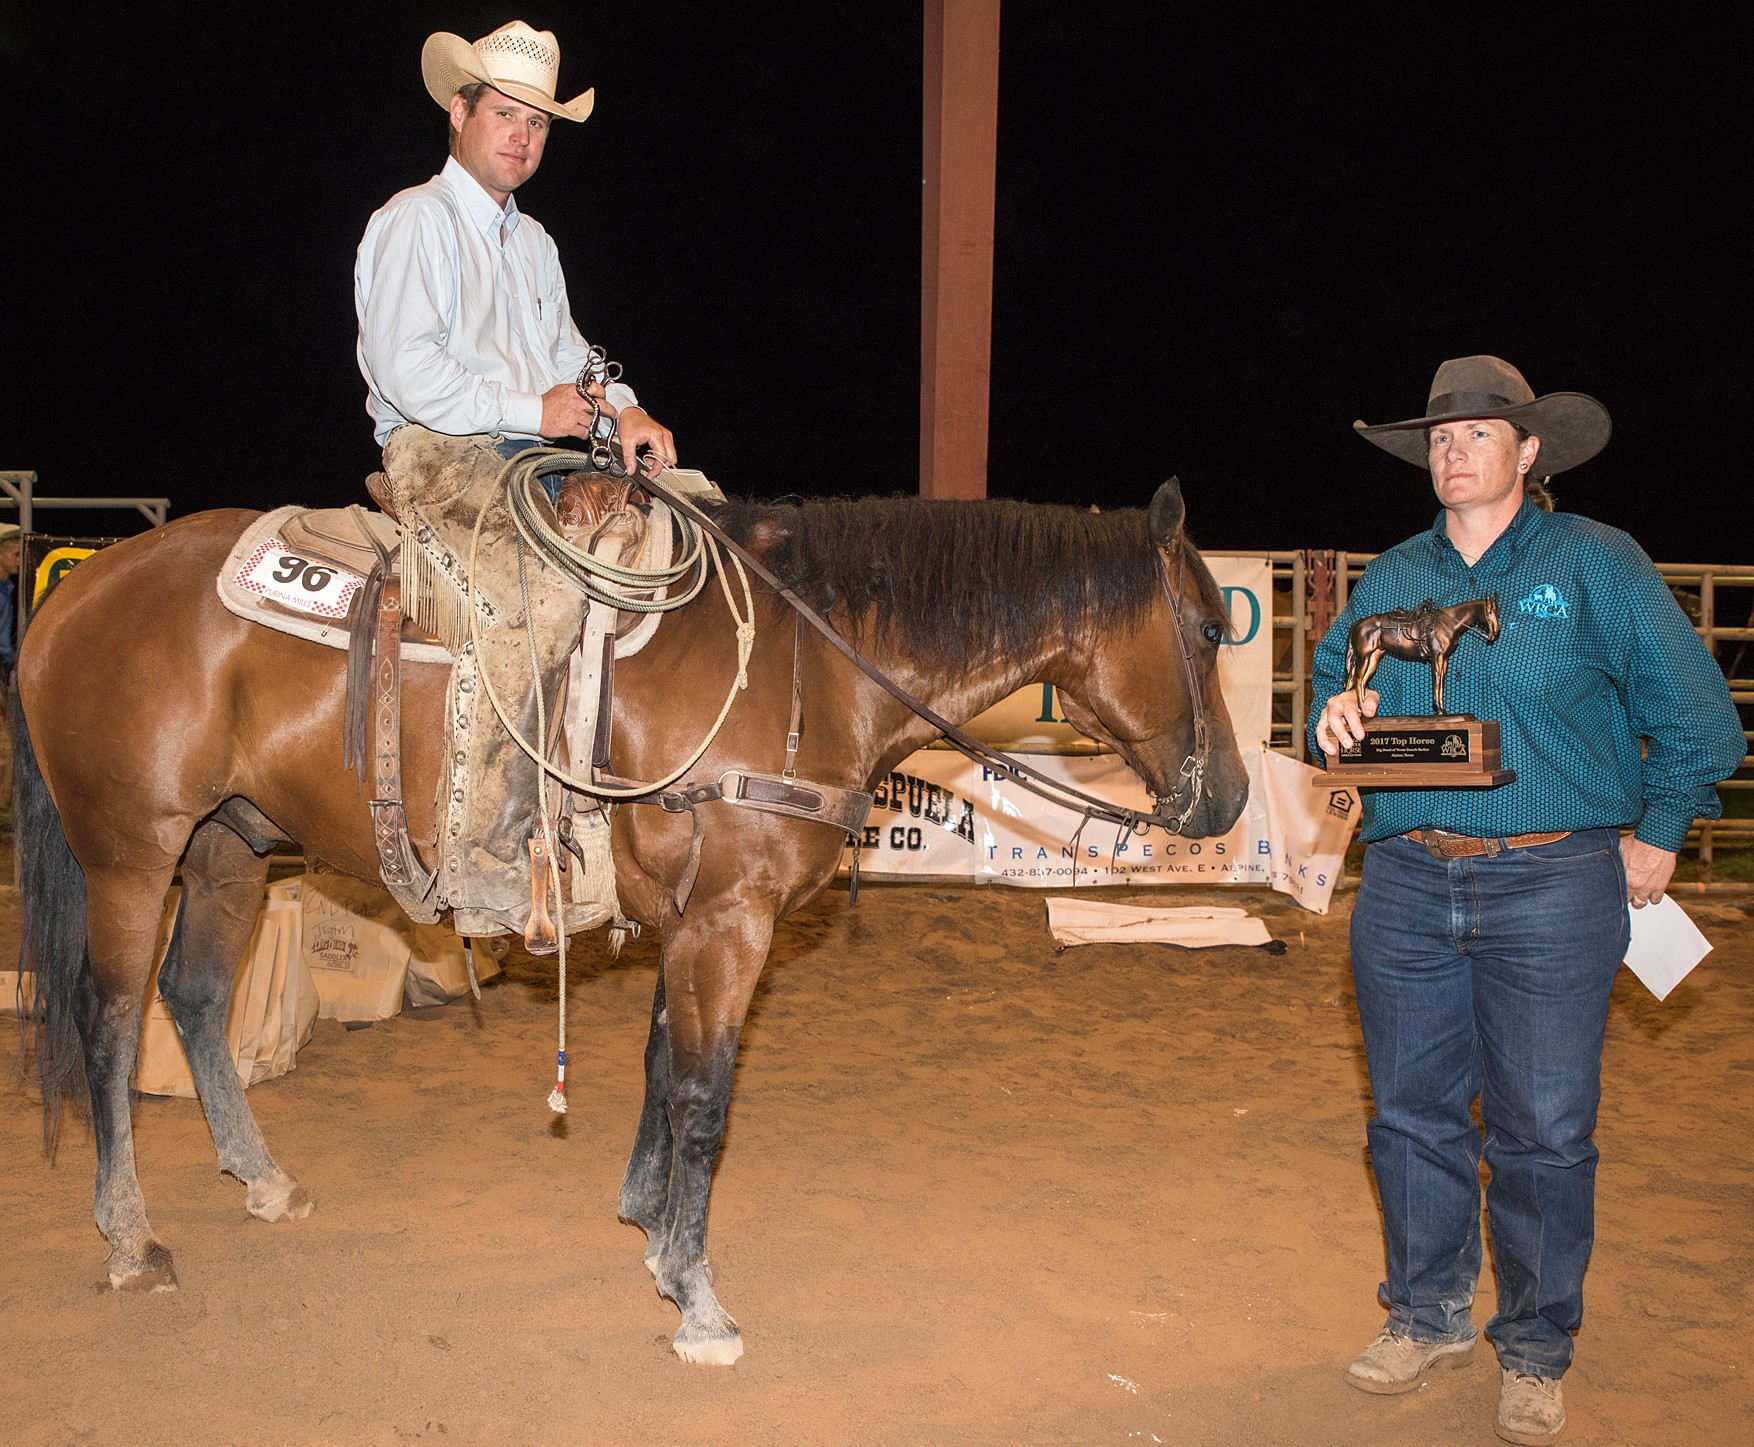 JMP Ethan, Ridden By: Bill Angell, Angell Ranch, Owned by: Angell Ranch - Top Horse - 2017 Big Bend of Texas Ranch Rodeo